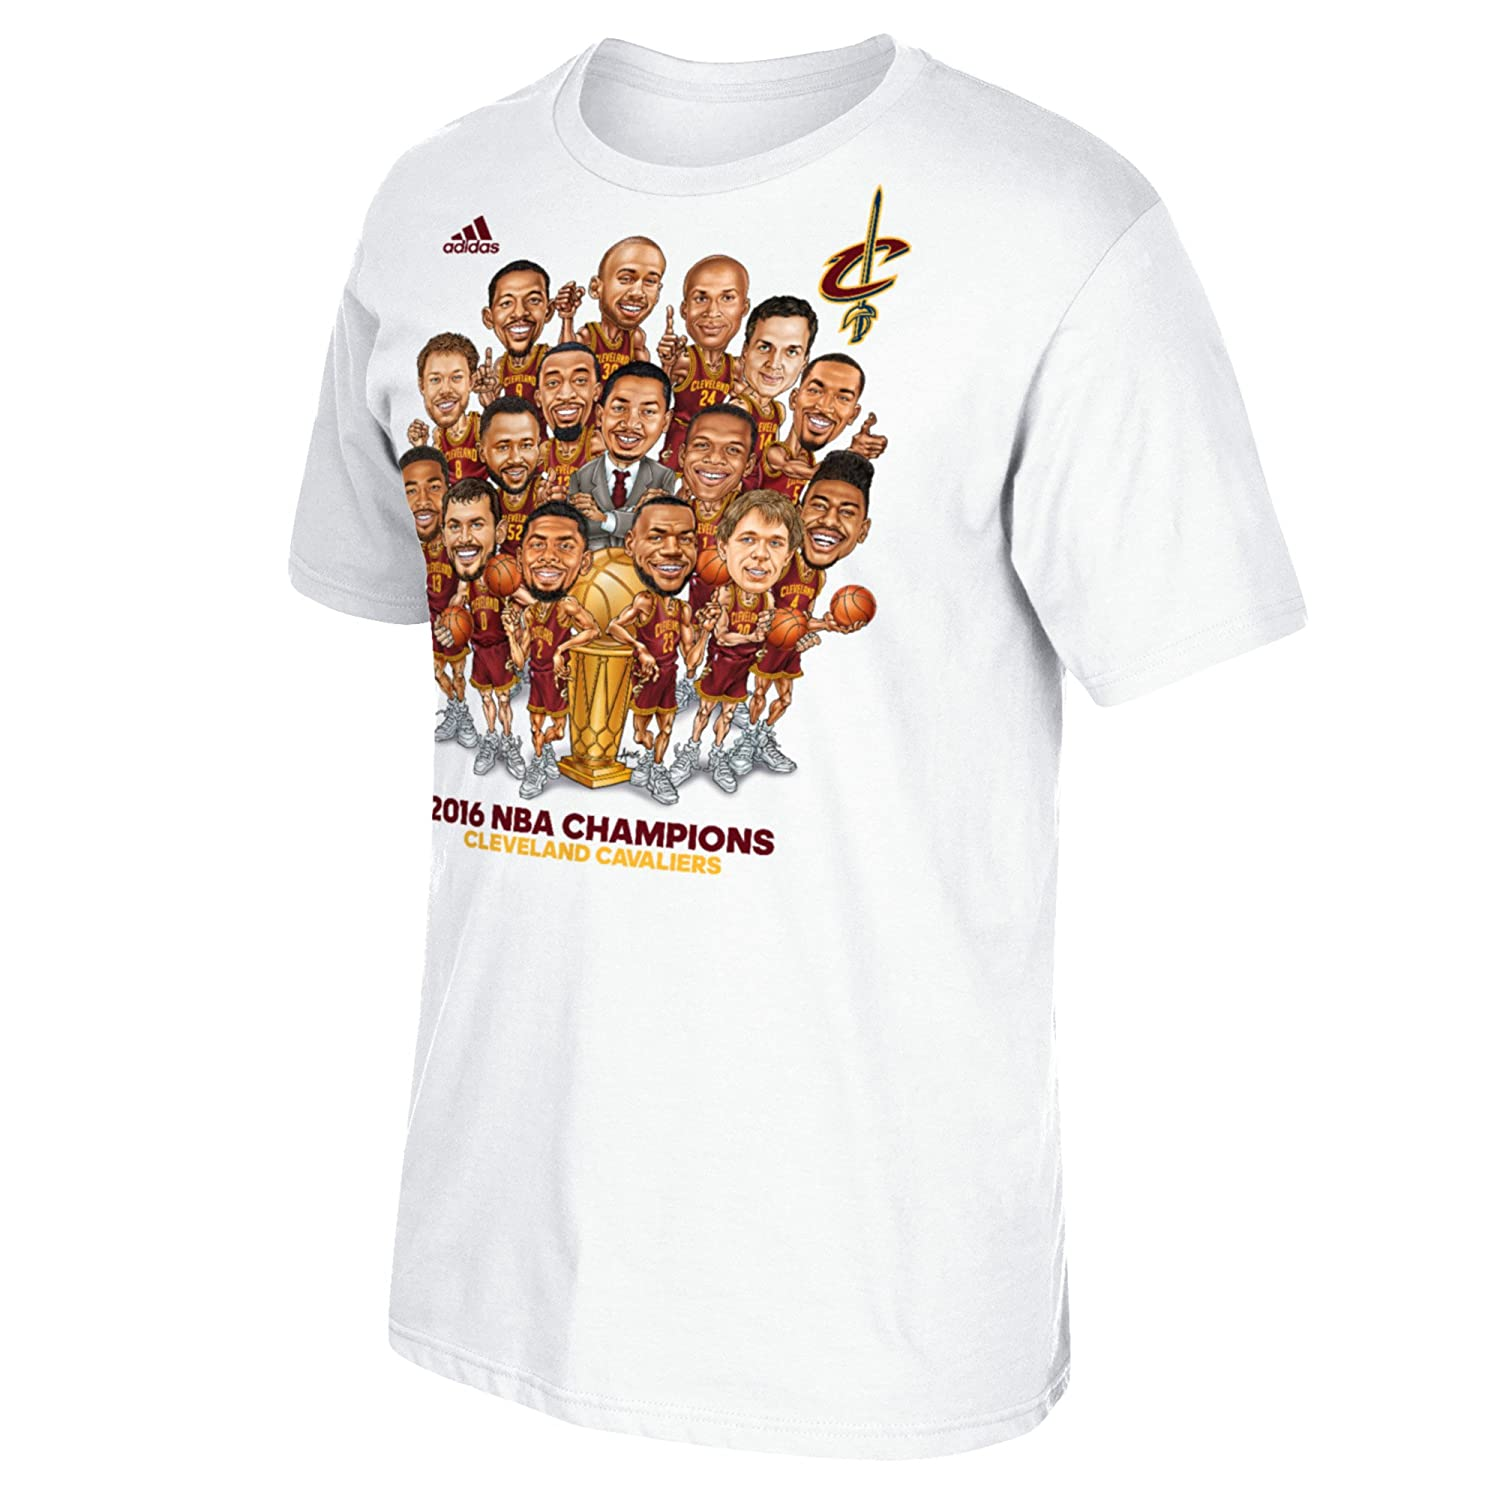 a7628c797021cf Amazon.com : adidas Cleveland Cavaliers White 2016 NBA Finals Champions  Cartoon Caricature Champs T-shirt 4XL : Sports & Outdoors